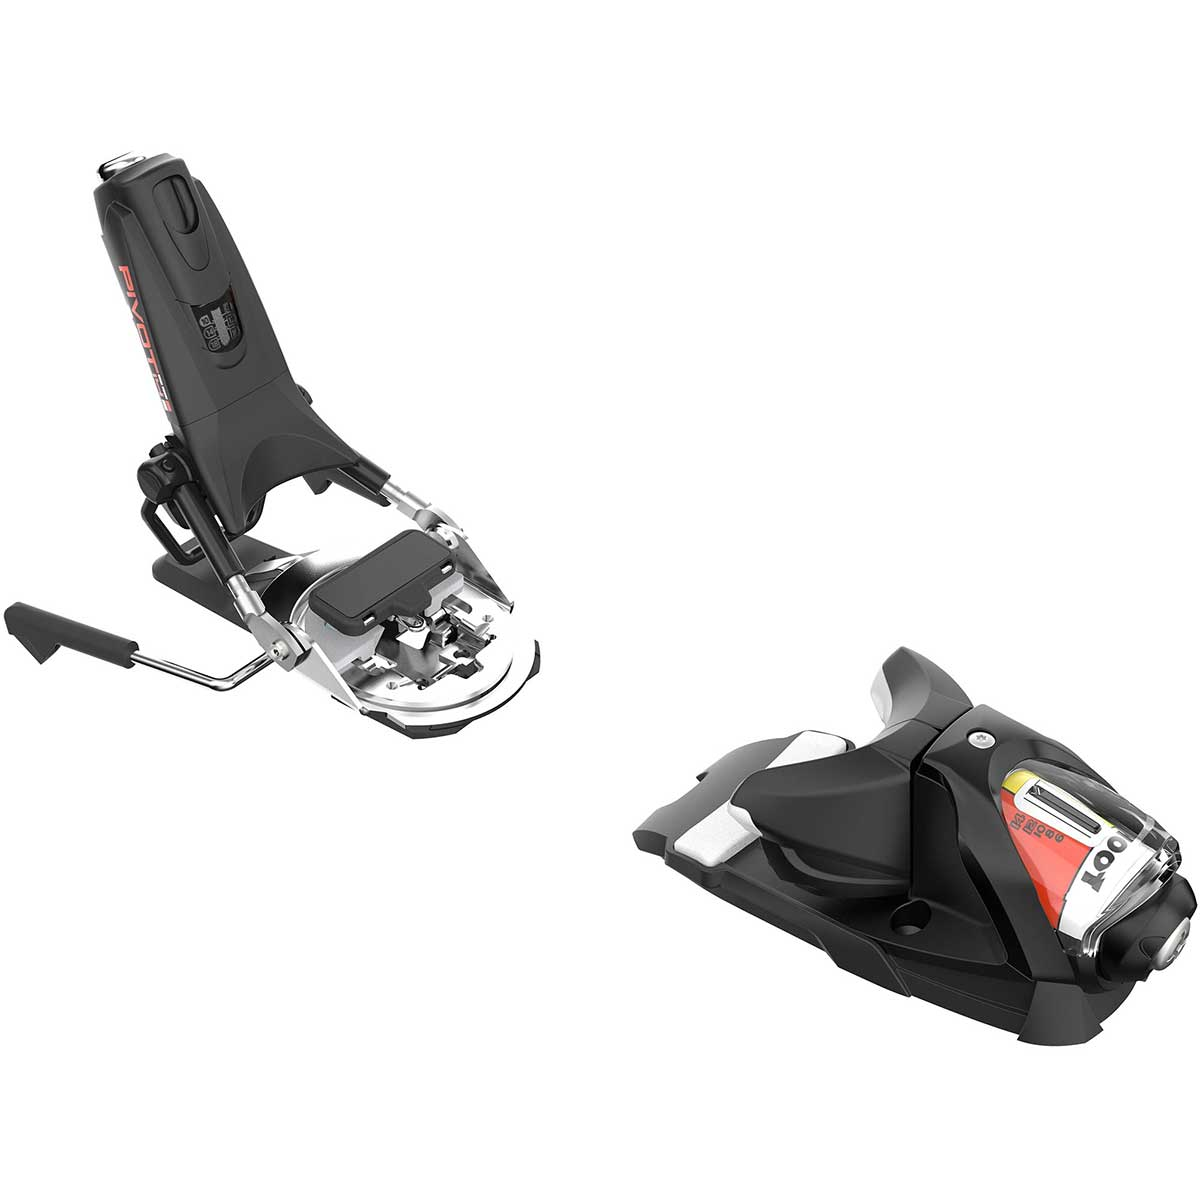 Look Pivot 14 GW ski binding in black icon